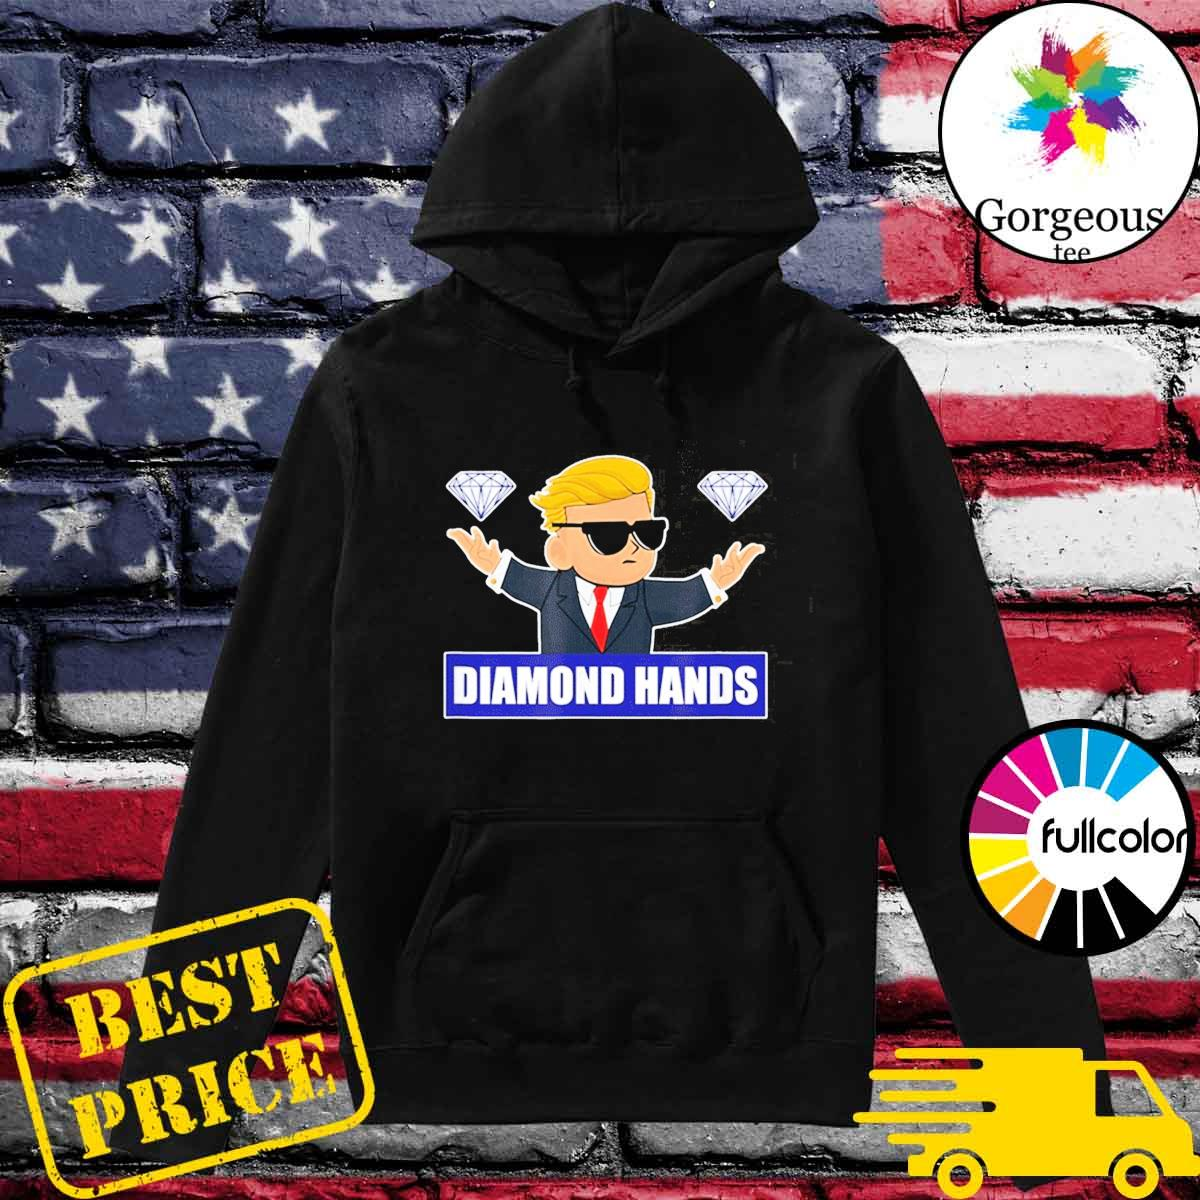 Wallstreetbets Day Trader – WSB Stock Market Options 2021 T-Shirt Hoodie